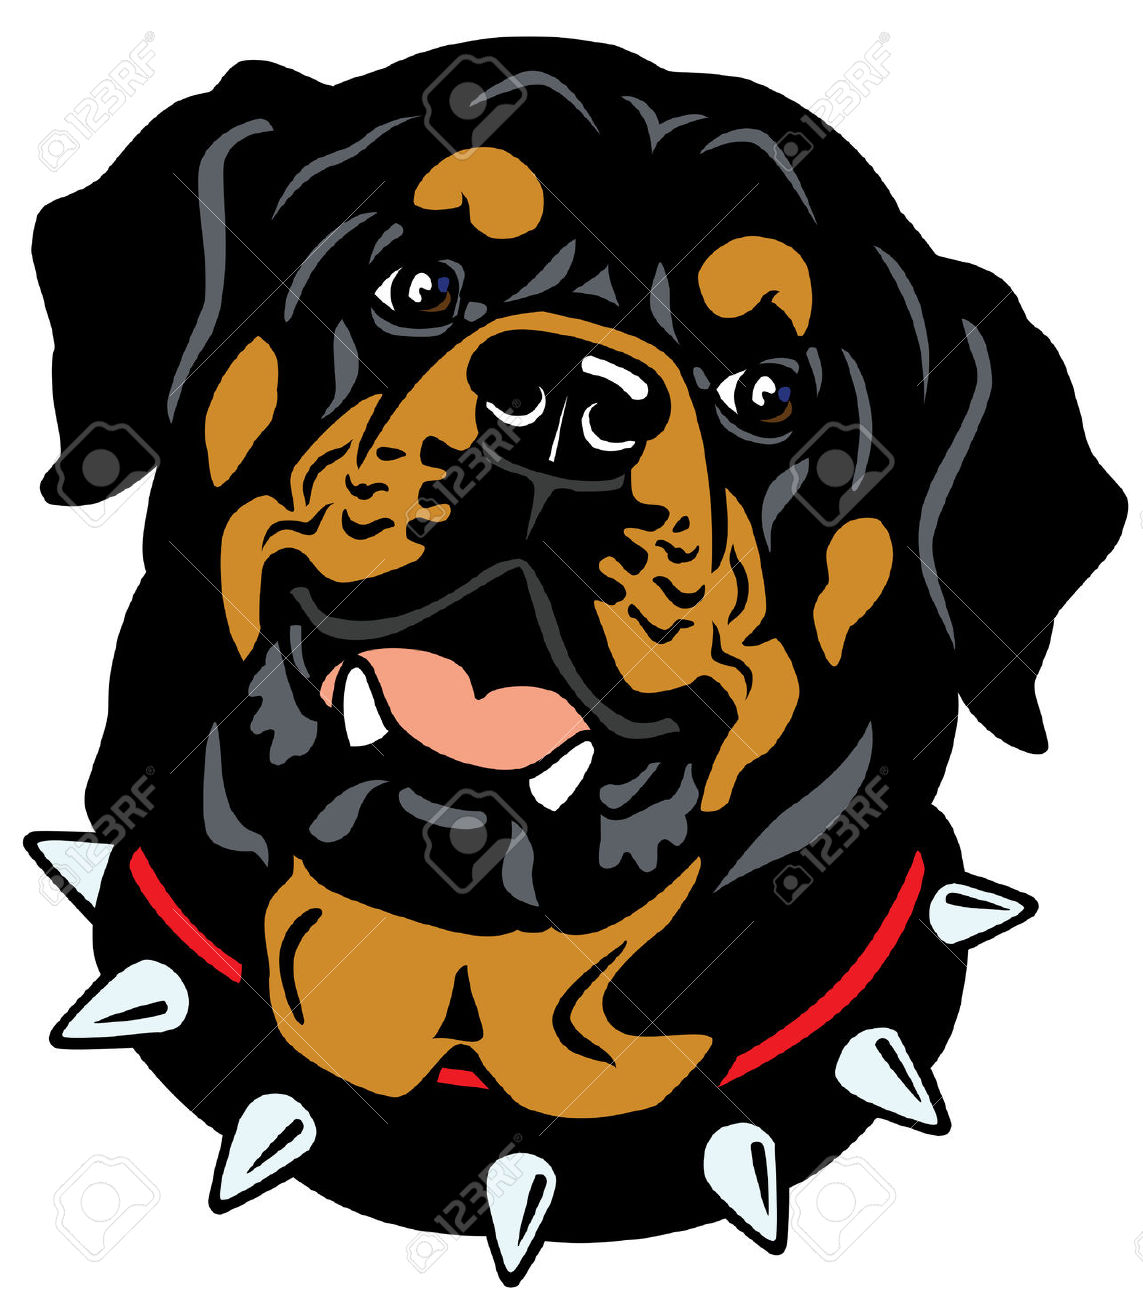 Rottweiler clipart #5, Download drawings